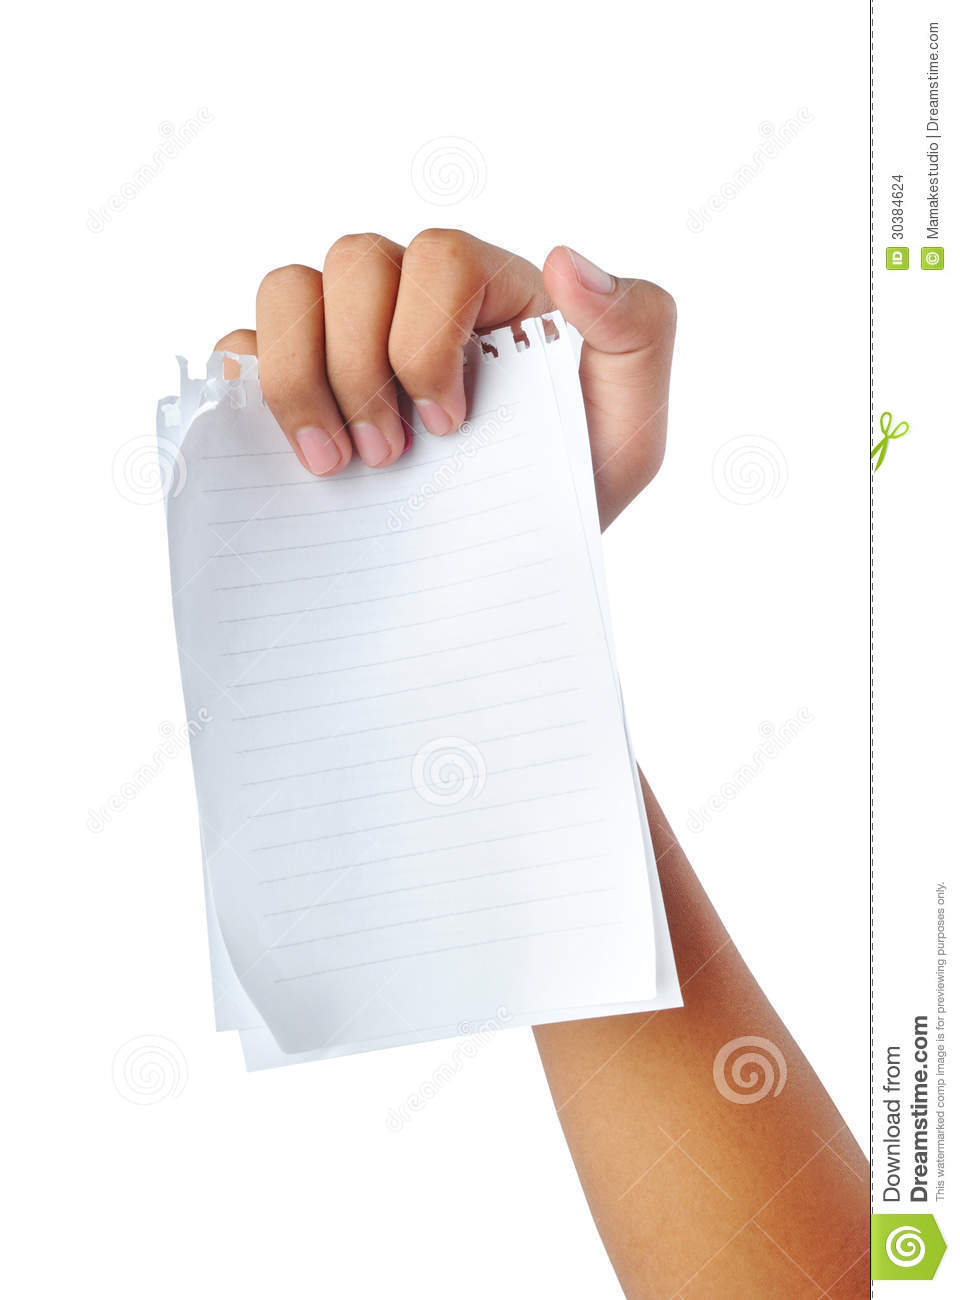 essay invisible hand essay The price mechanism - the invisible hand the invisible hand the invisible hand was a metaphor used by adam smith to describe the principle by which a.